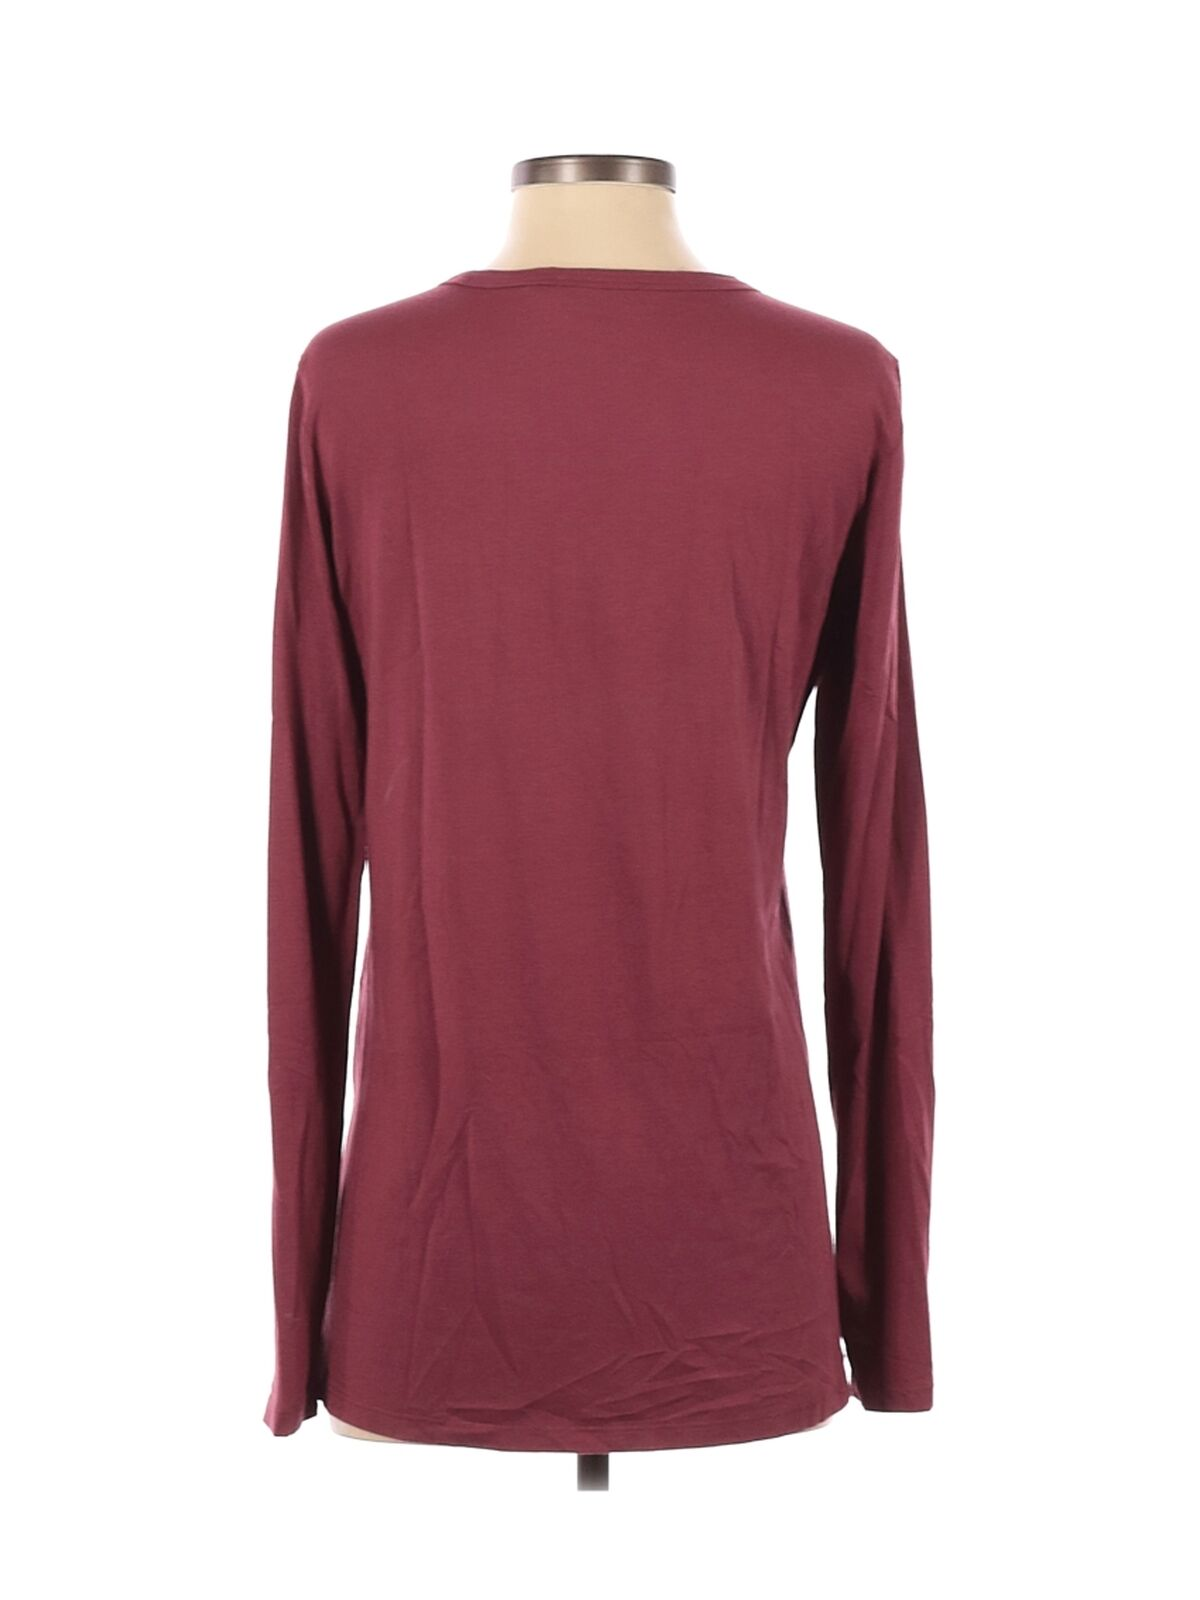 Theory Women Red Long Sleeve T-Shirt S - image 2